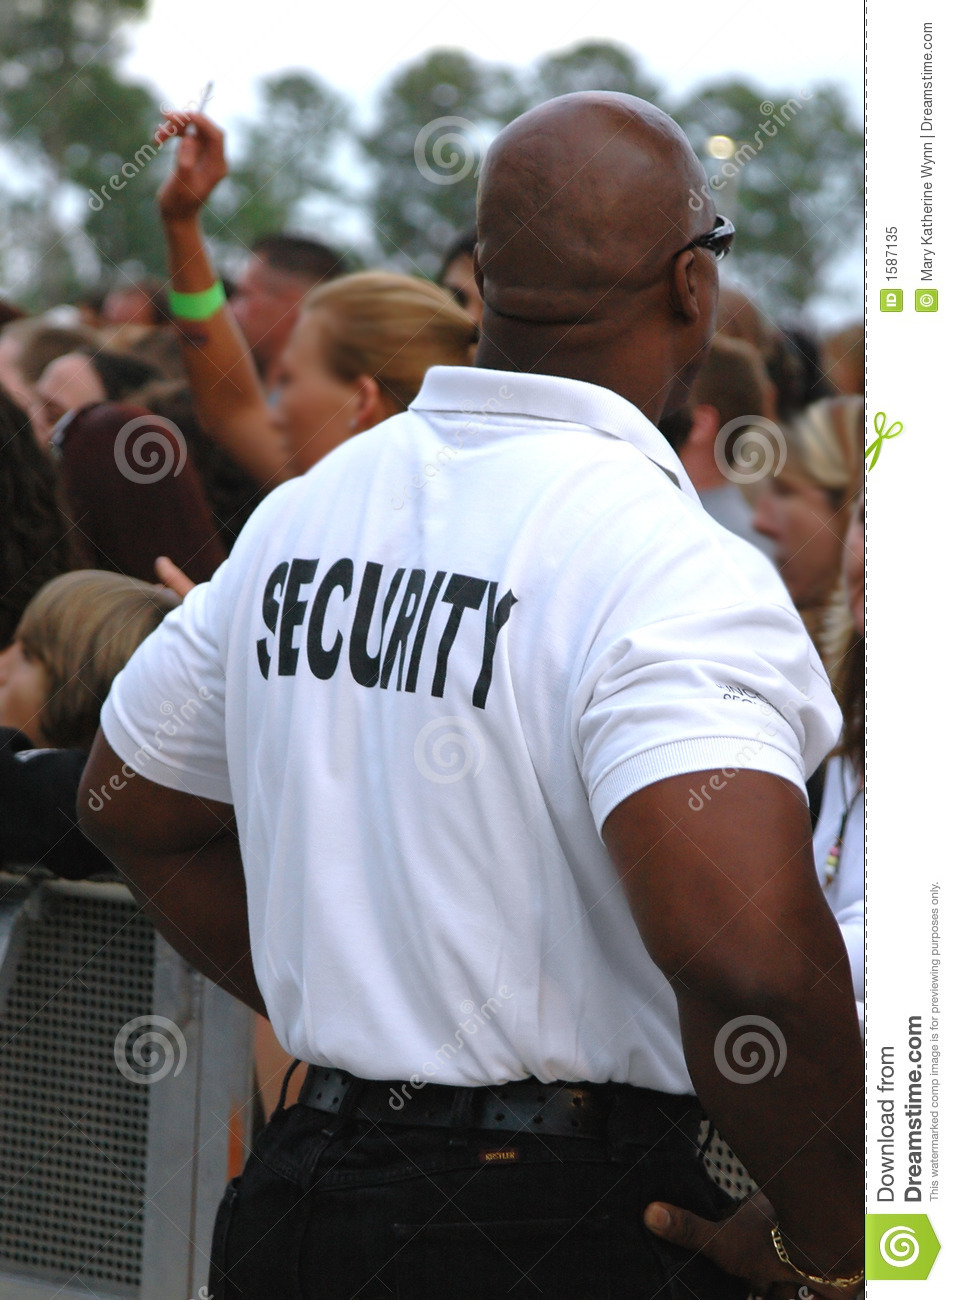 Security Guard Payment